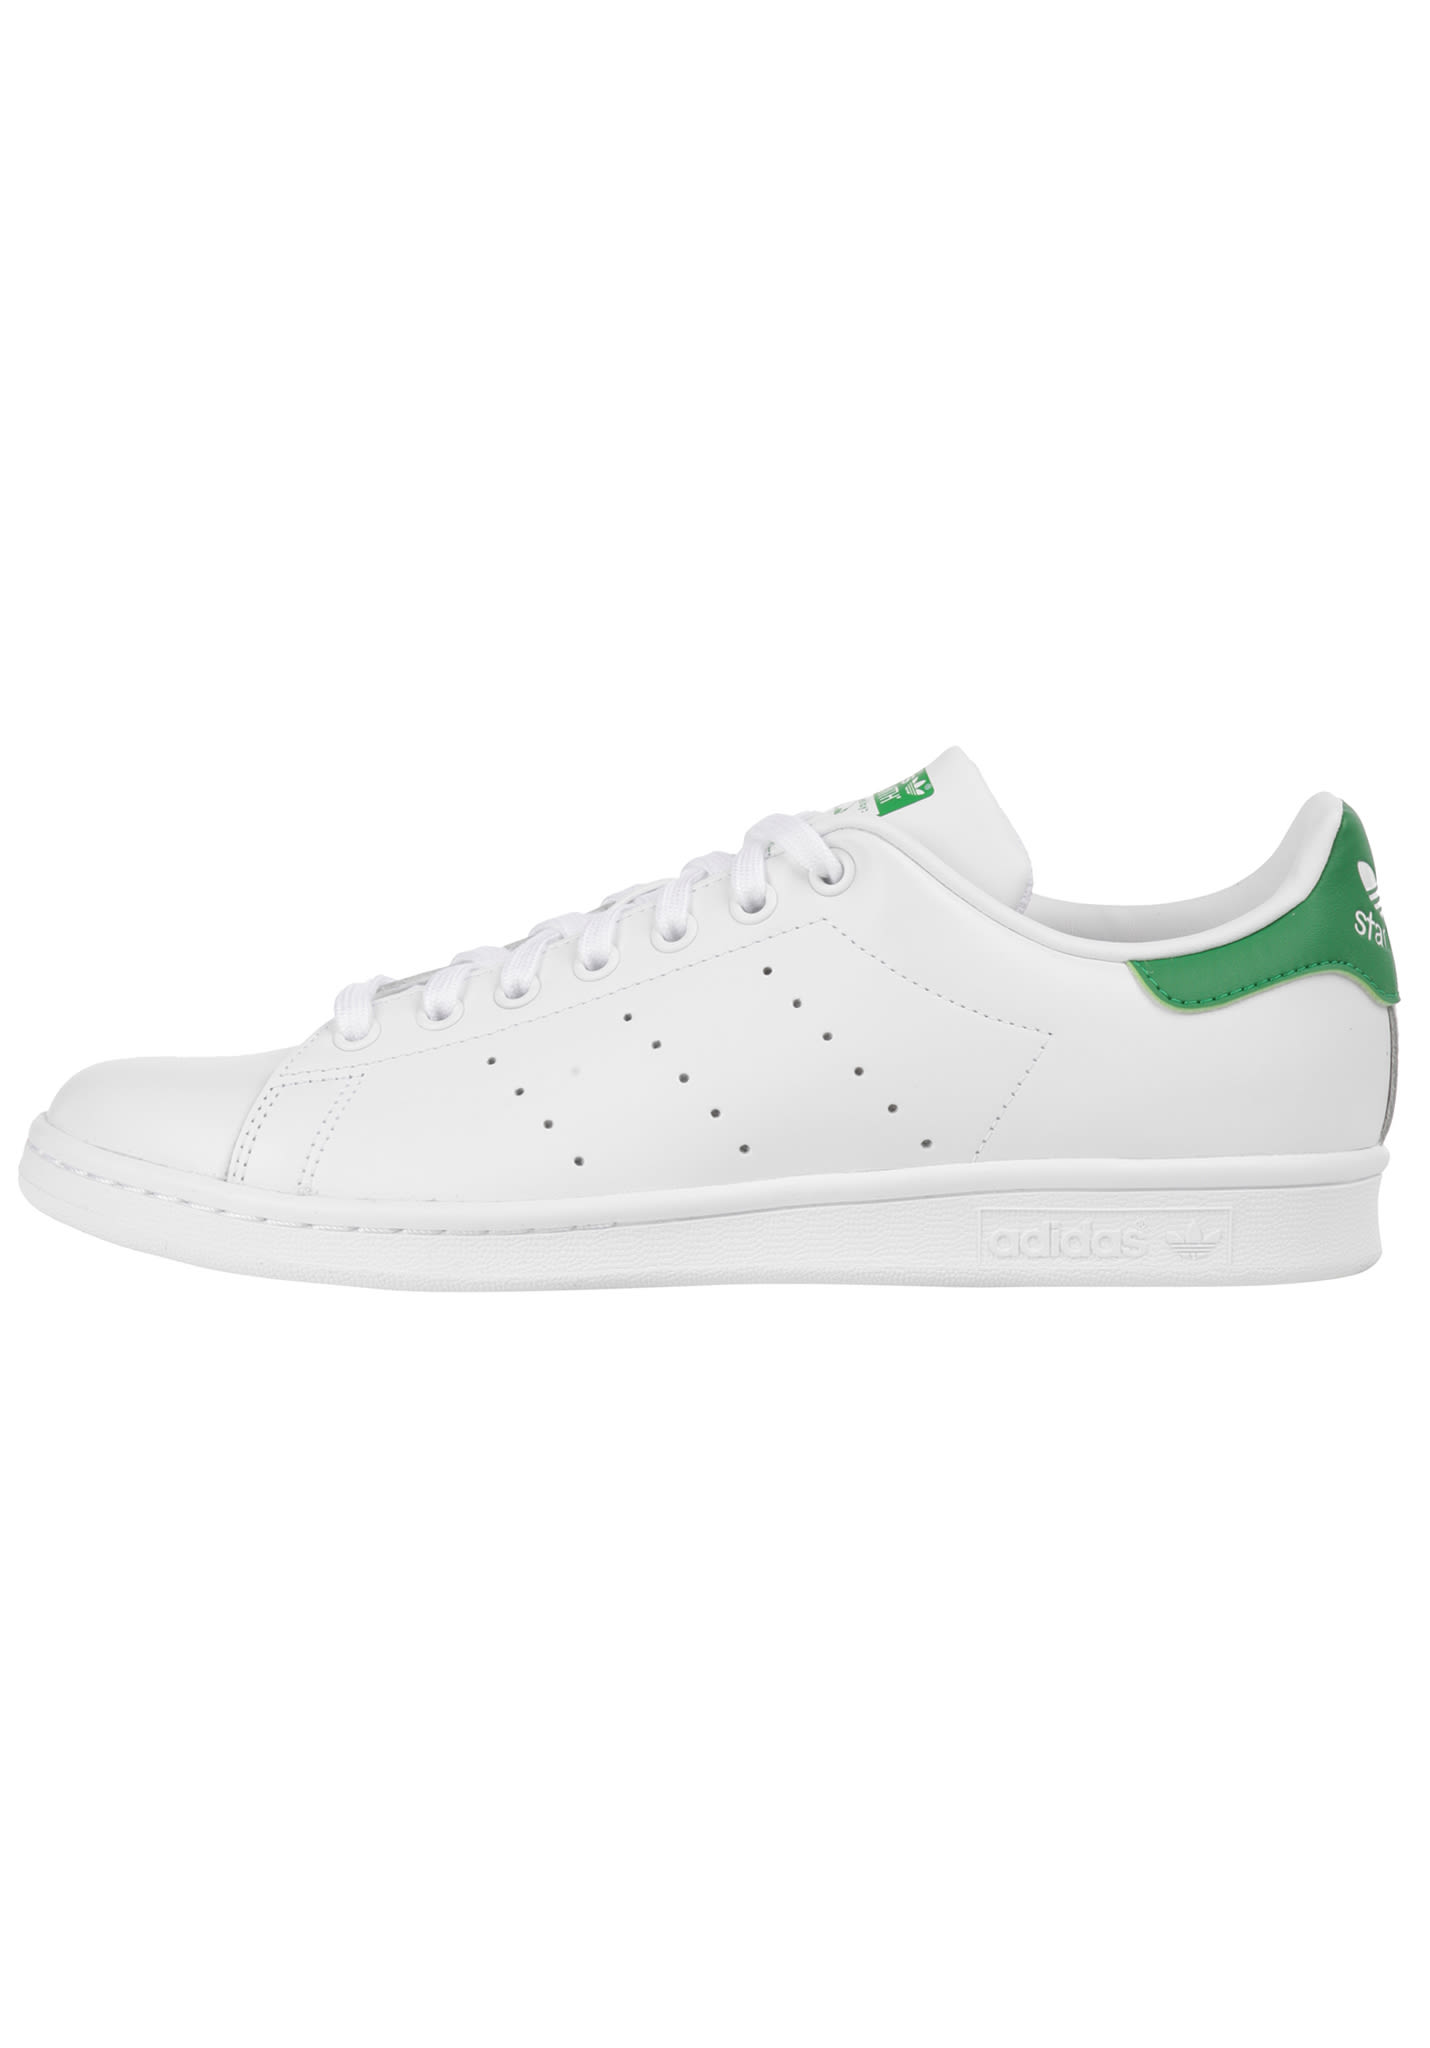 detailed pictures 1c003 0498f ADIDAS ORIGINALS Stan Smith - Sneakers - White